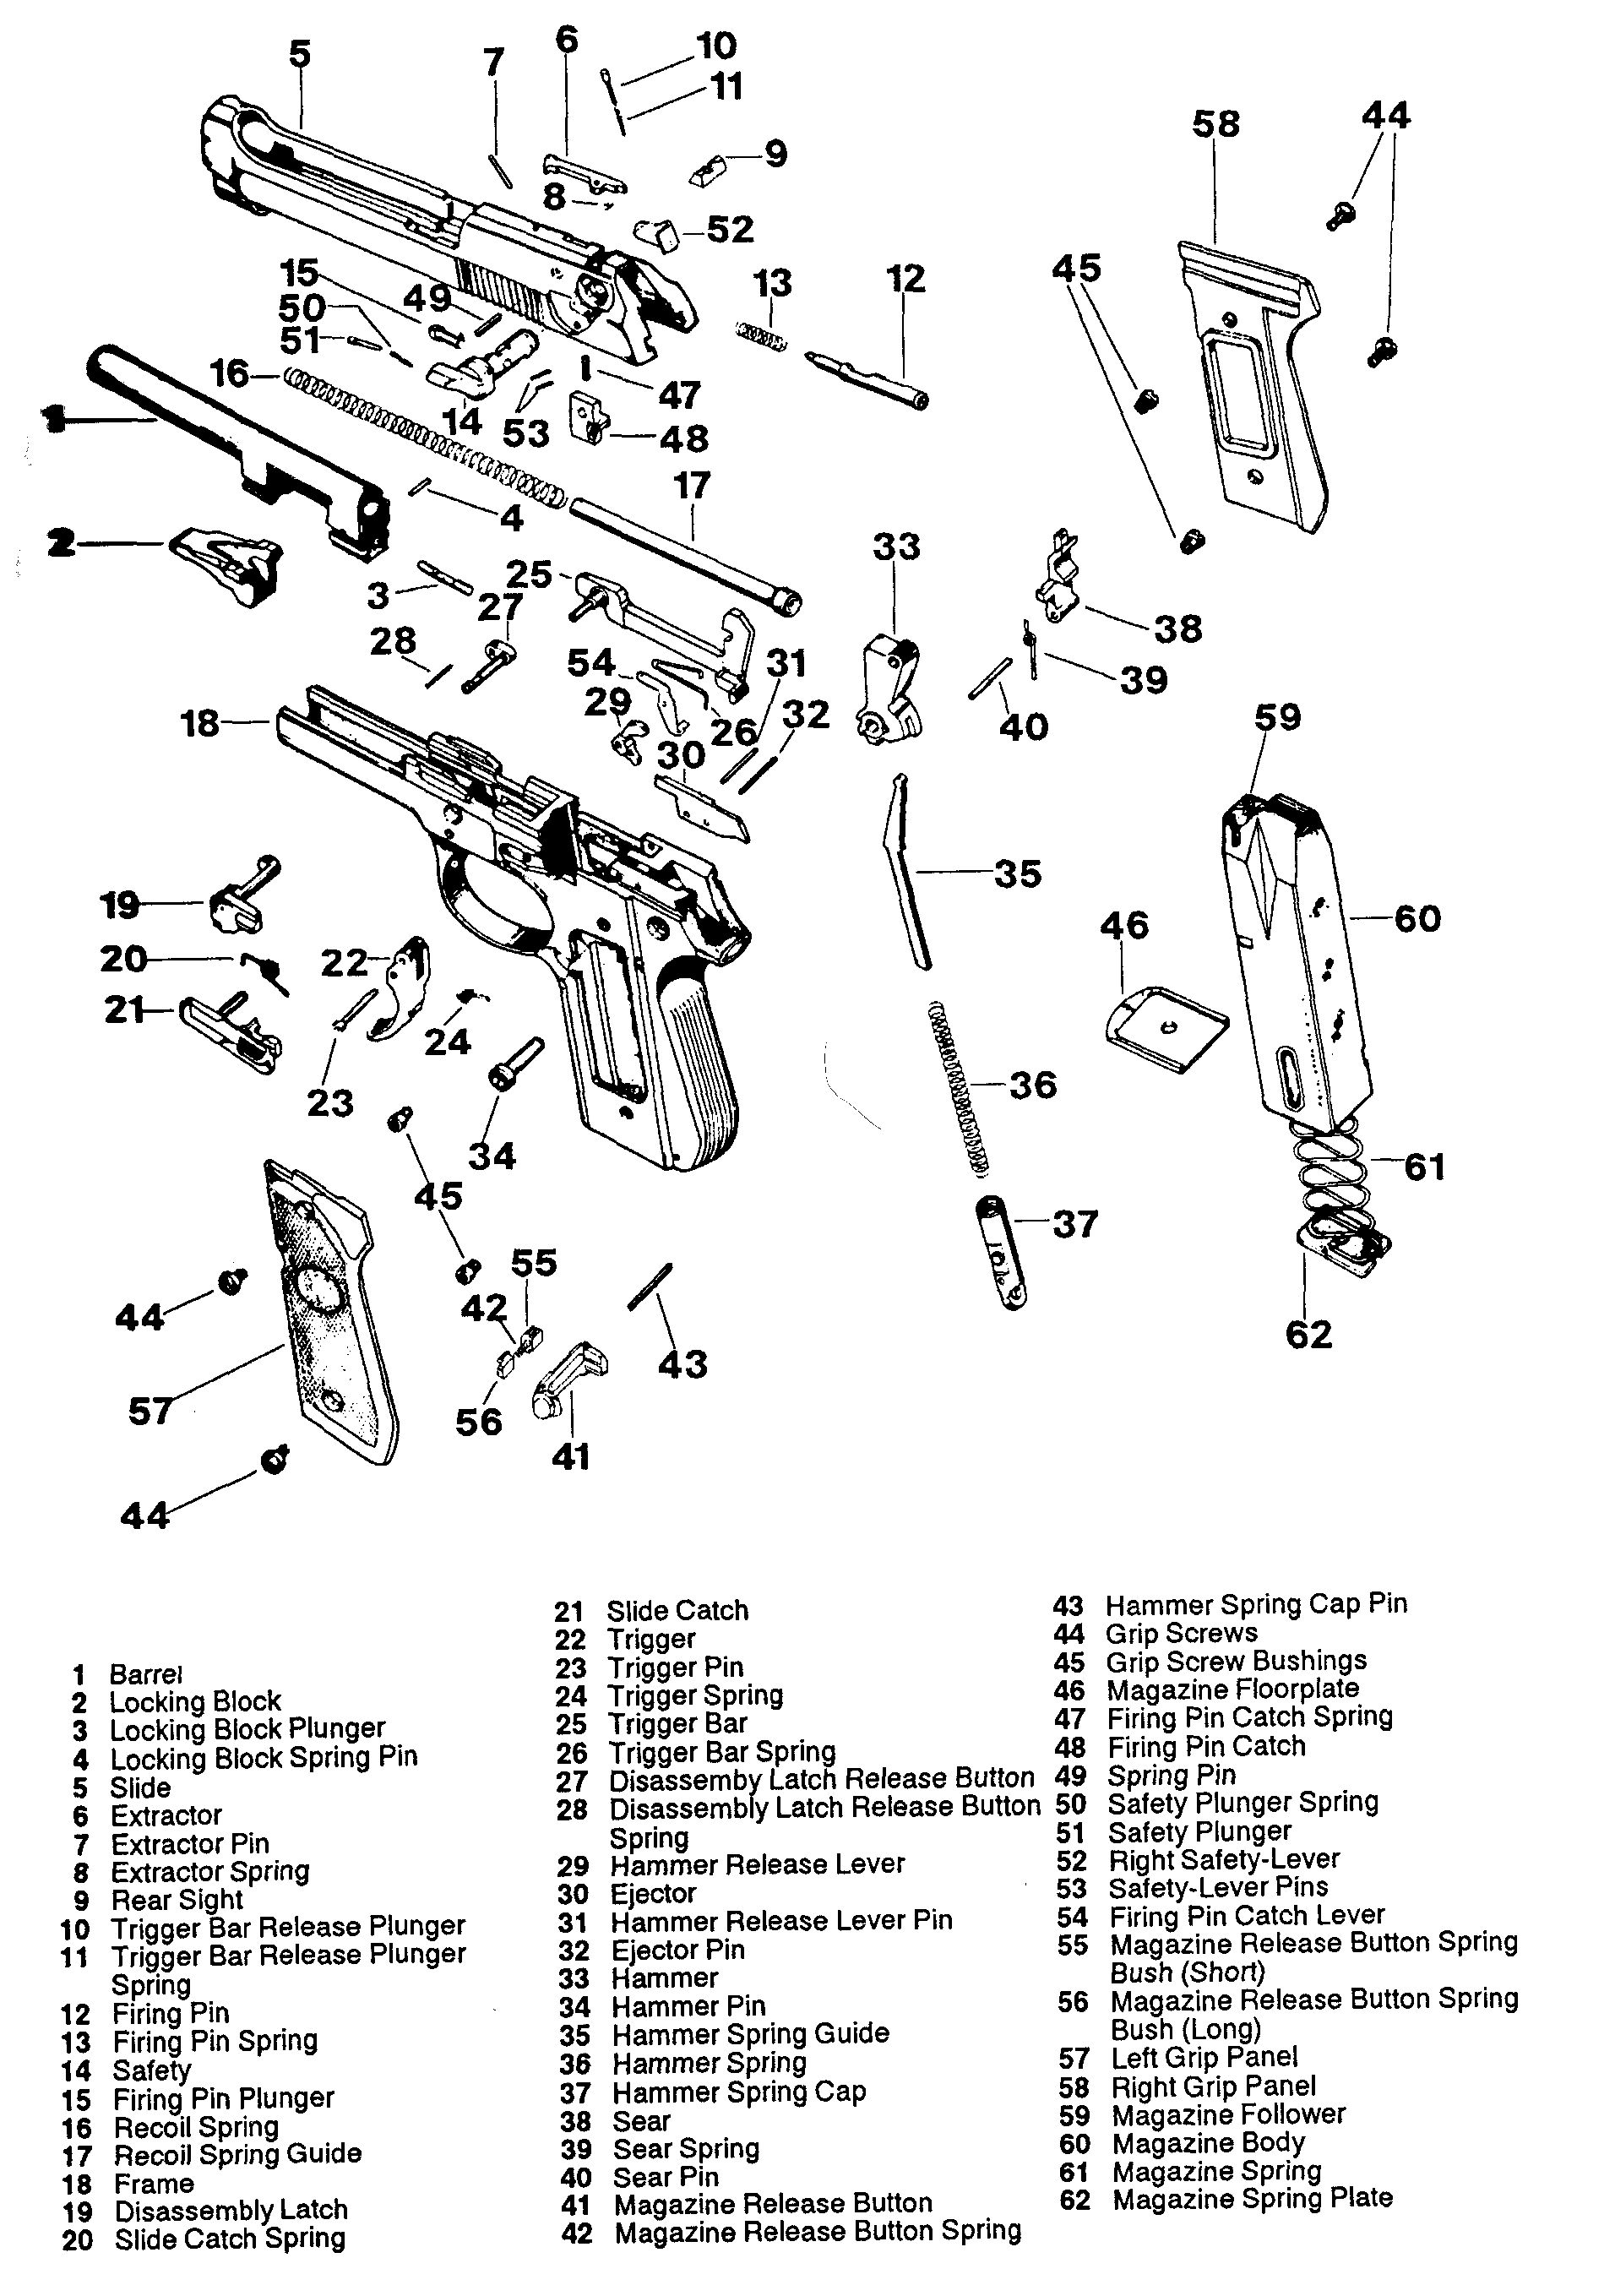 beretta 92fs exploded view toys pinterest